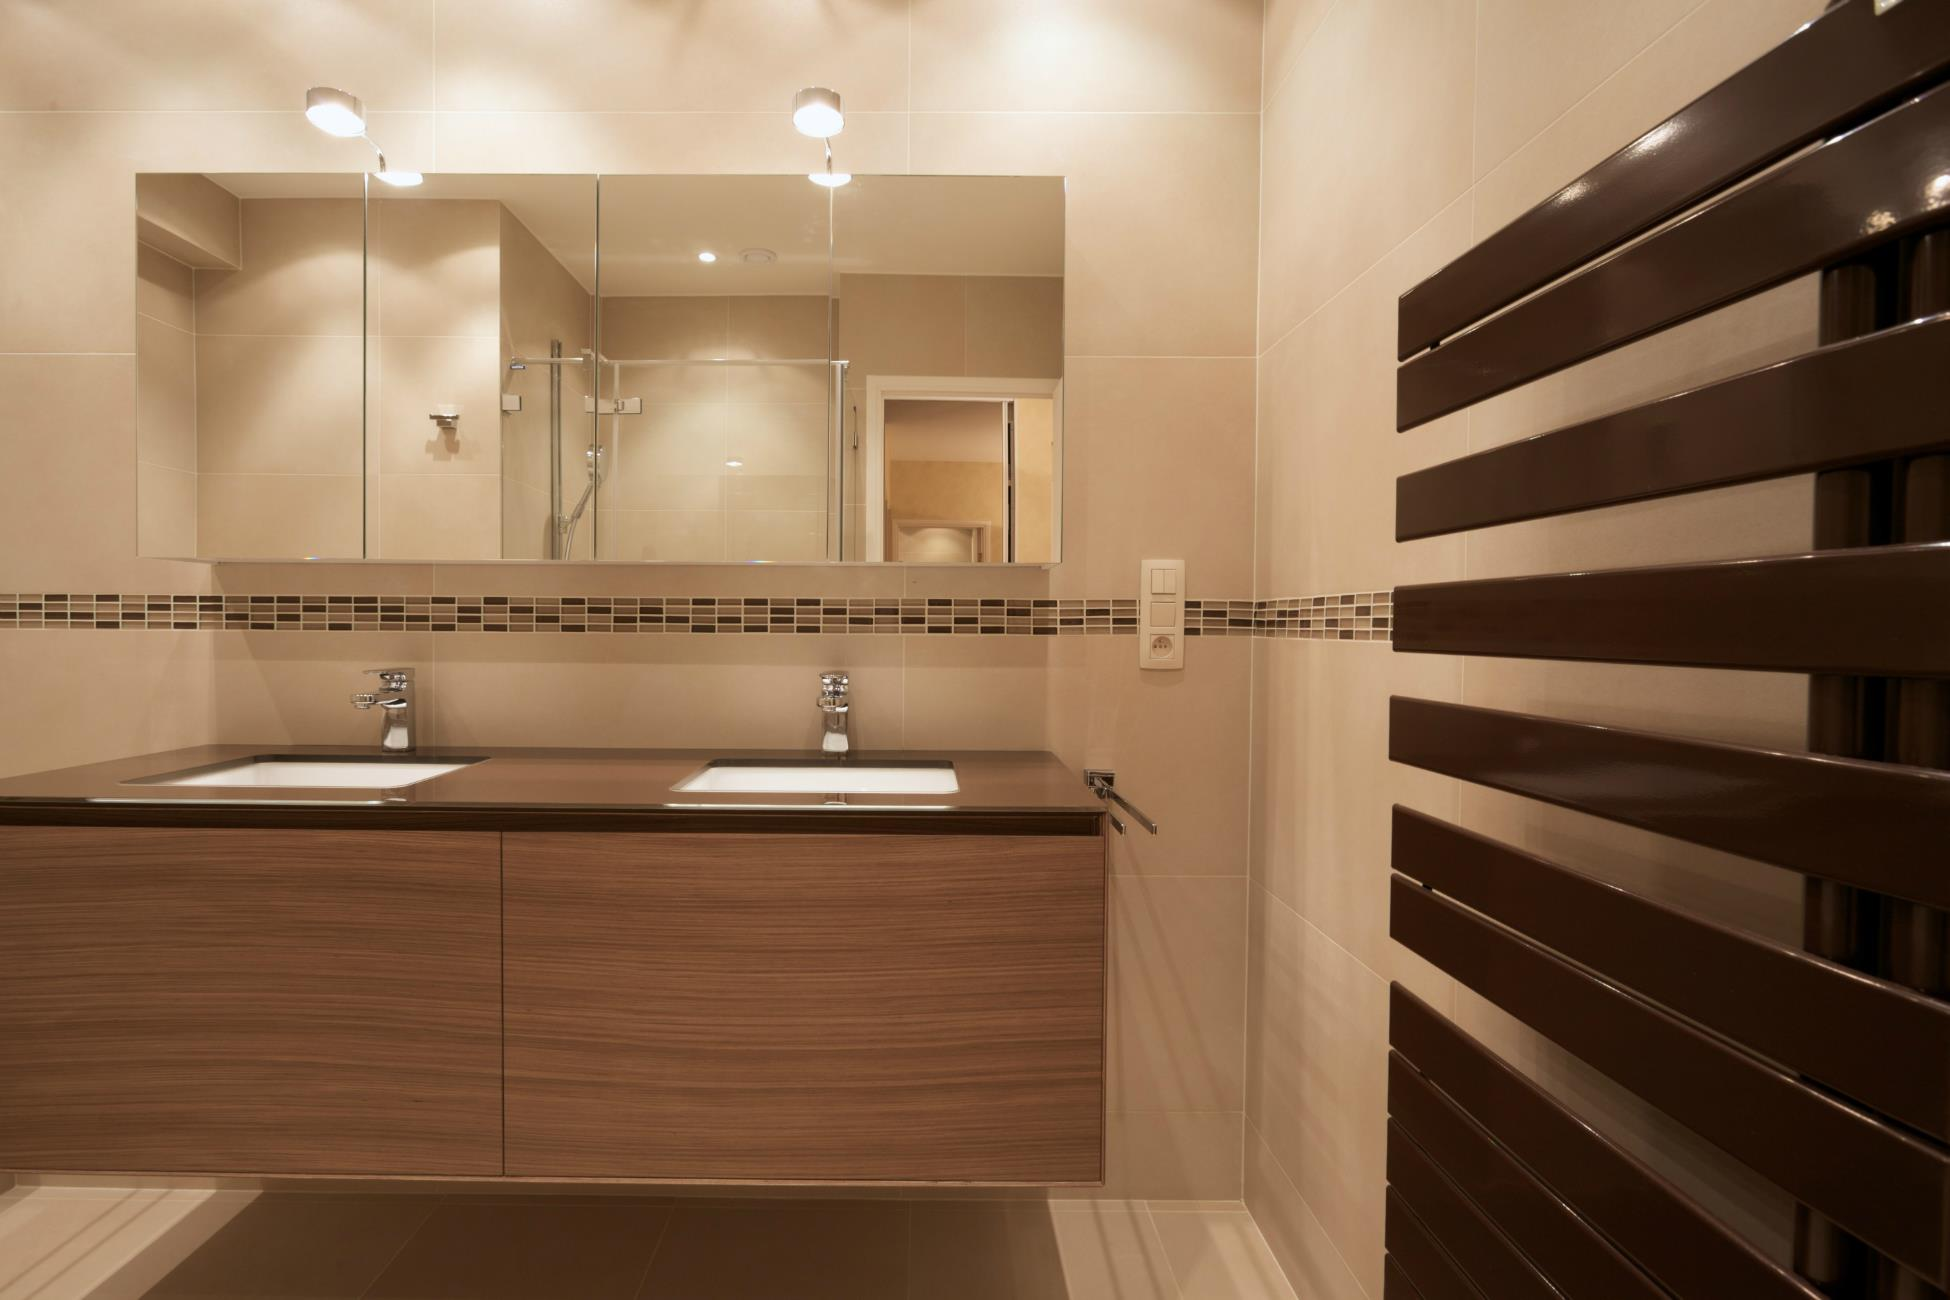 Salle de bain design r alisations renov management for Salle de bain complete design